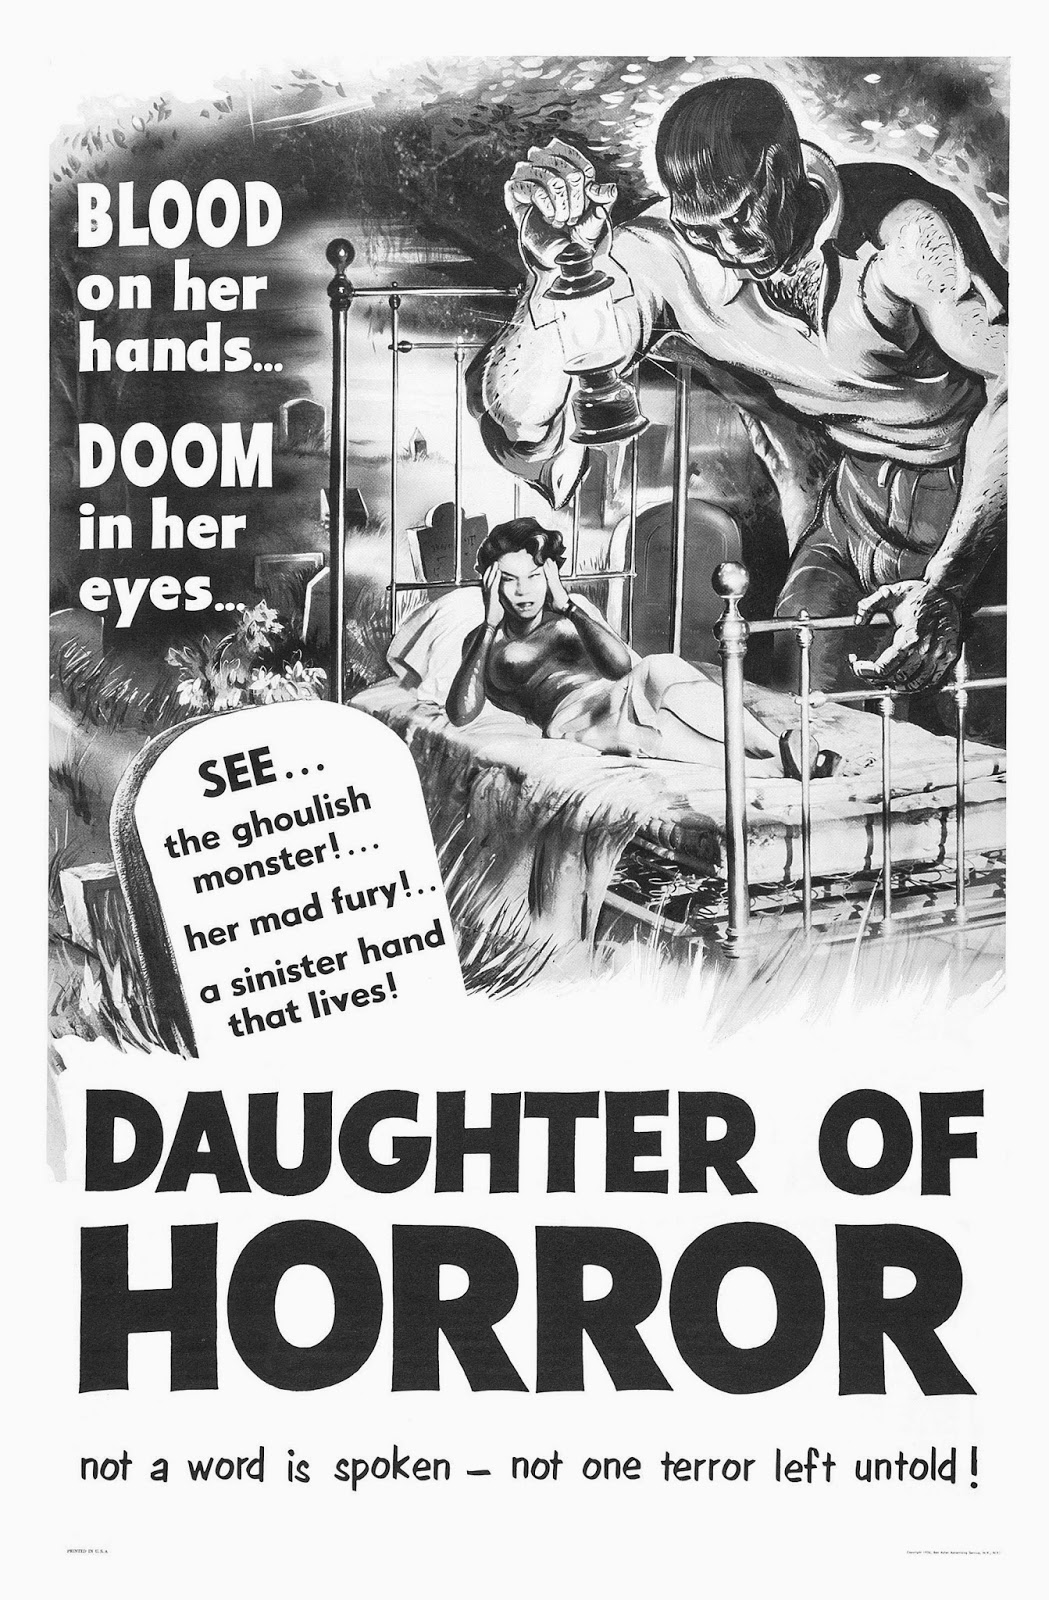 Daughter of Horror (1955) by JOHN PARKER